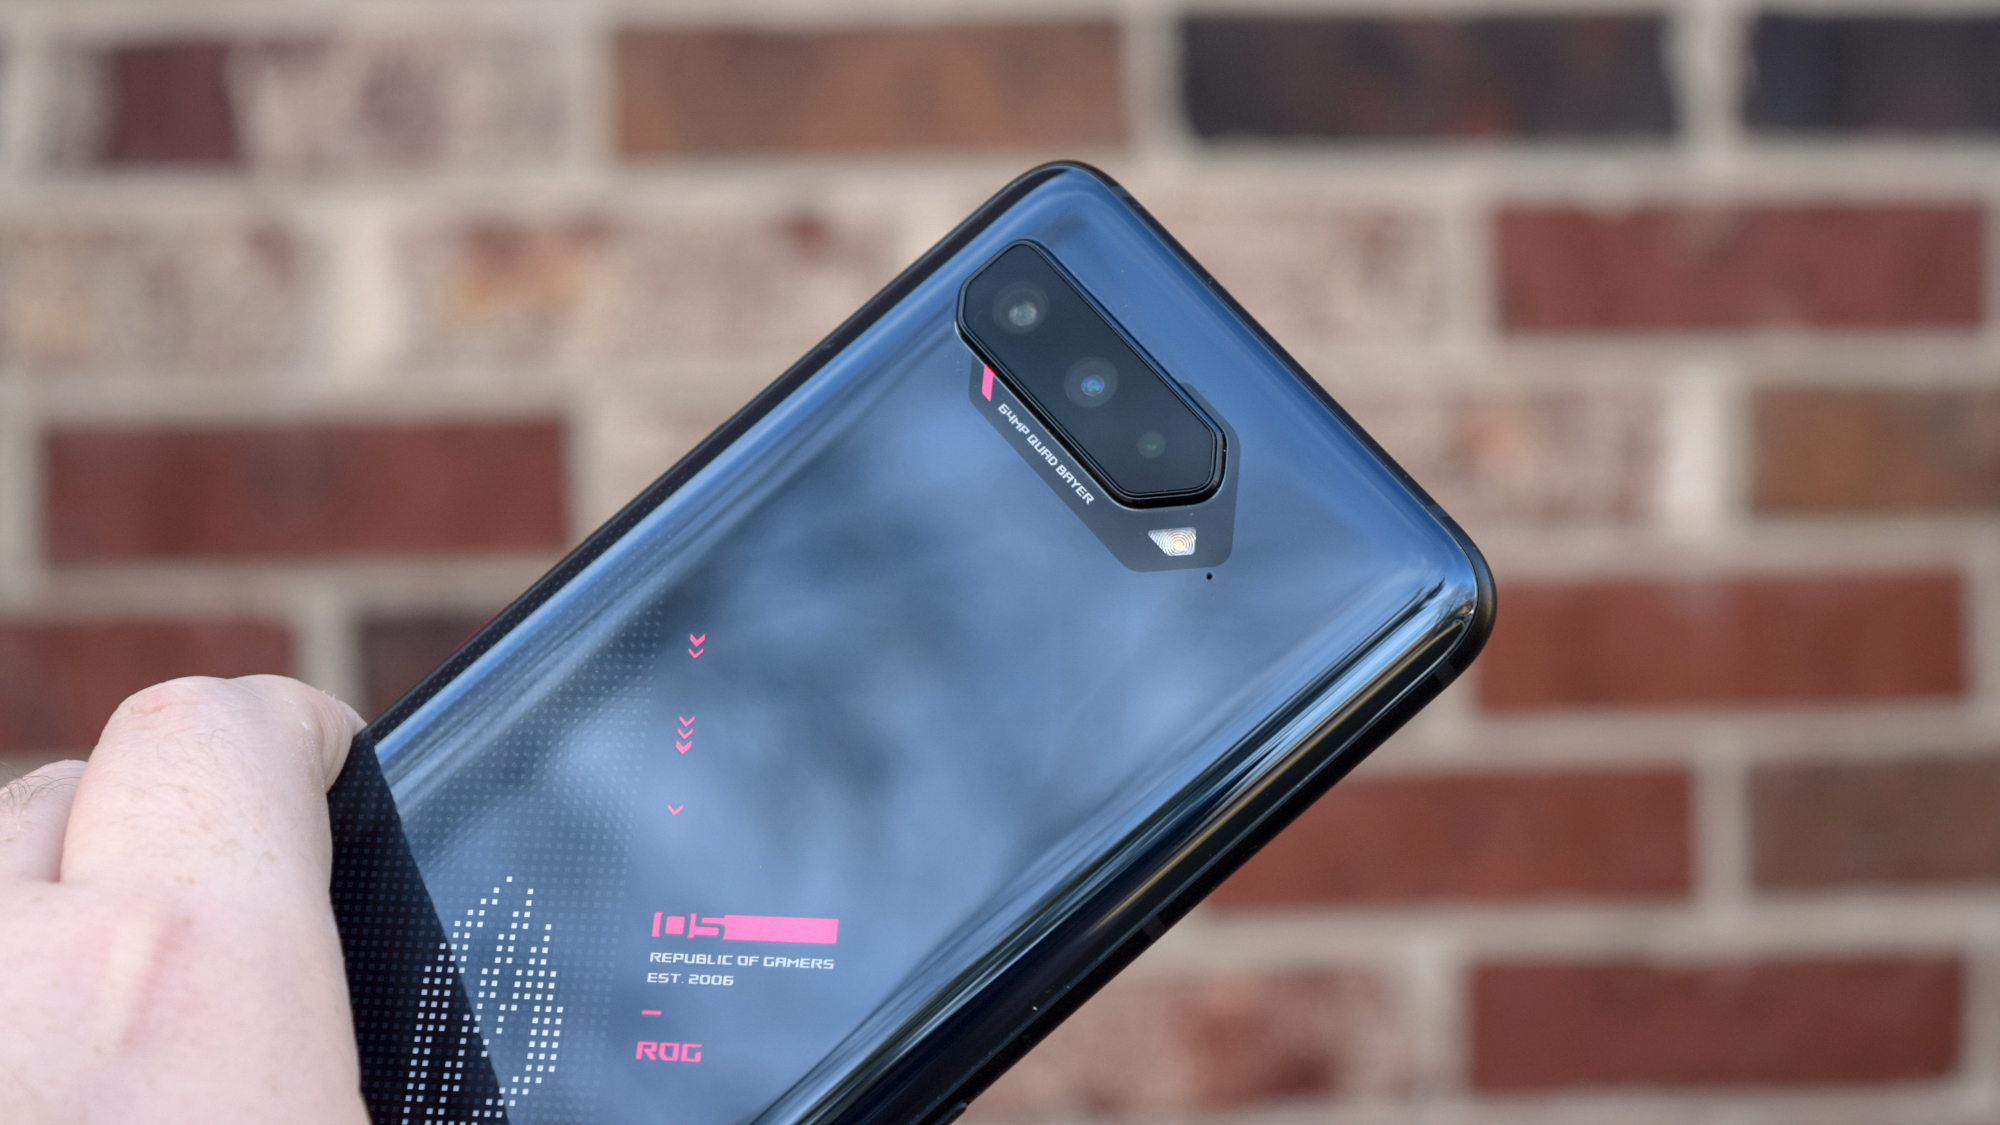 best android phones: rog phone 5